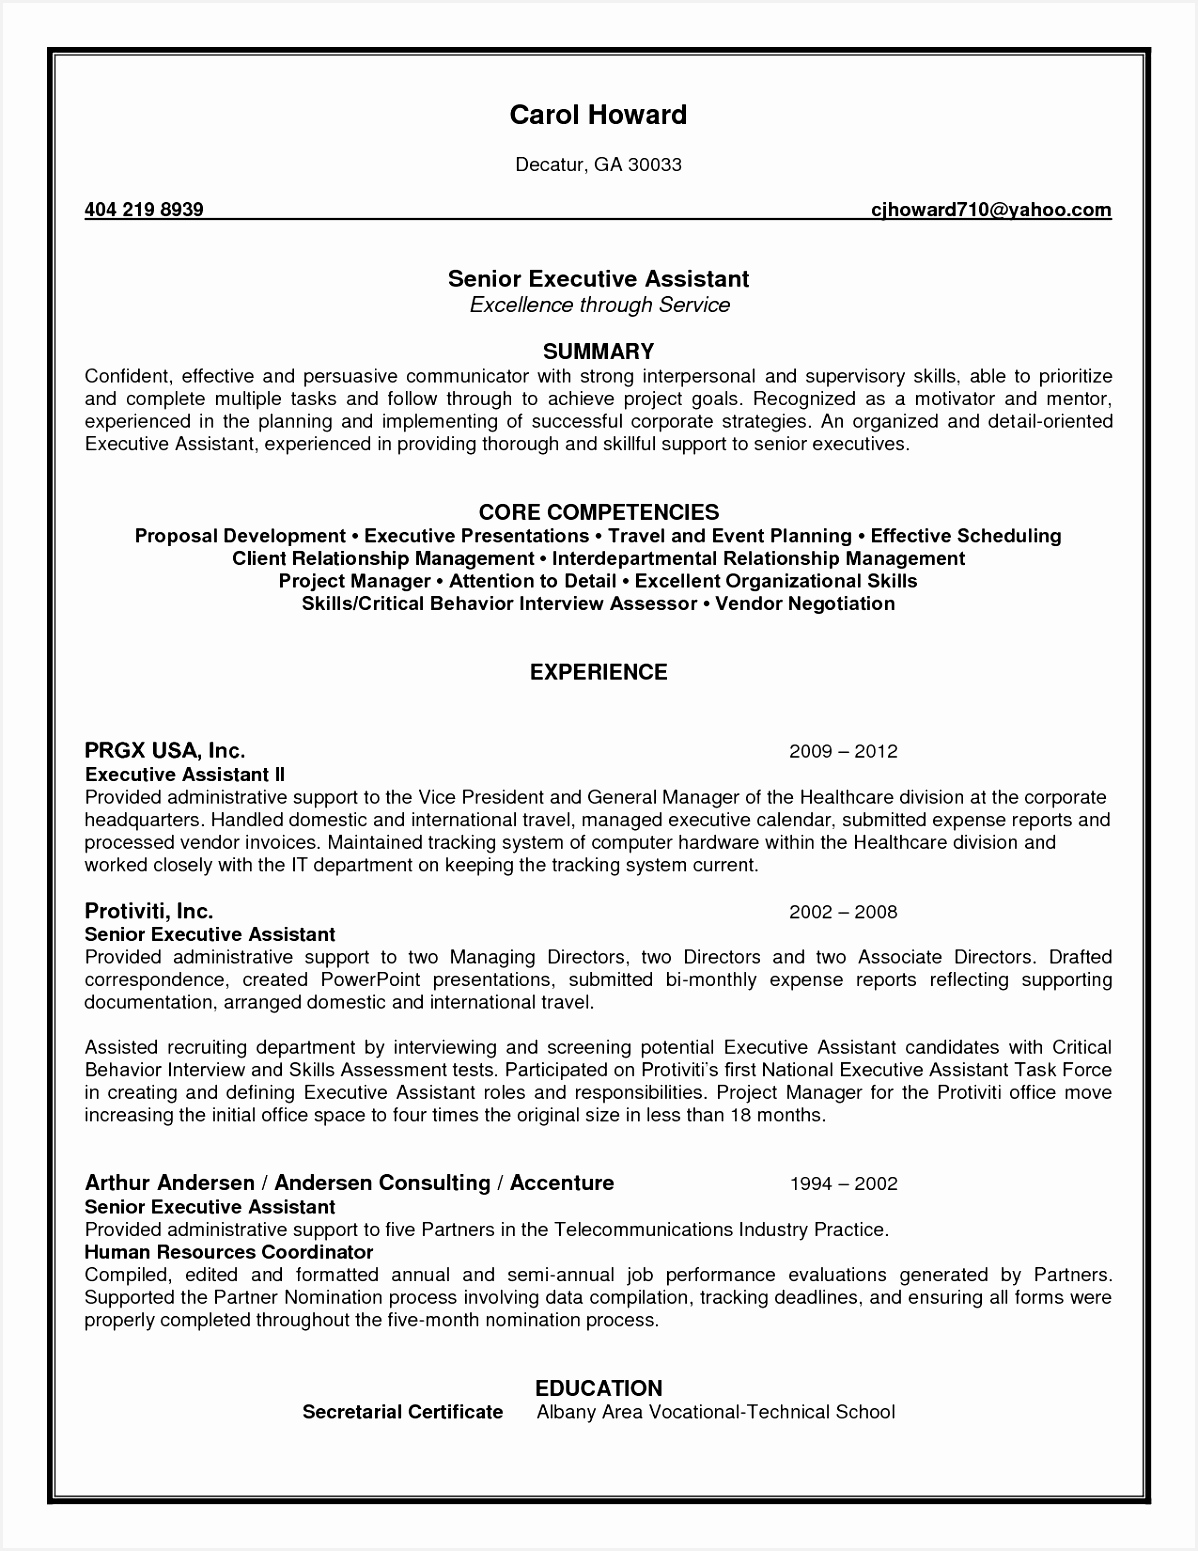 Medical Administrative assistant Resume Best Resume Template Executive assistant Beautiful Ssis Resume 0d Medical 155111982kOkc